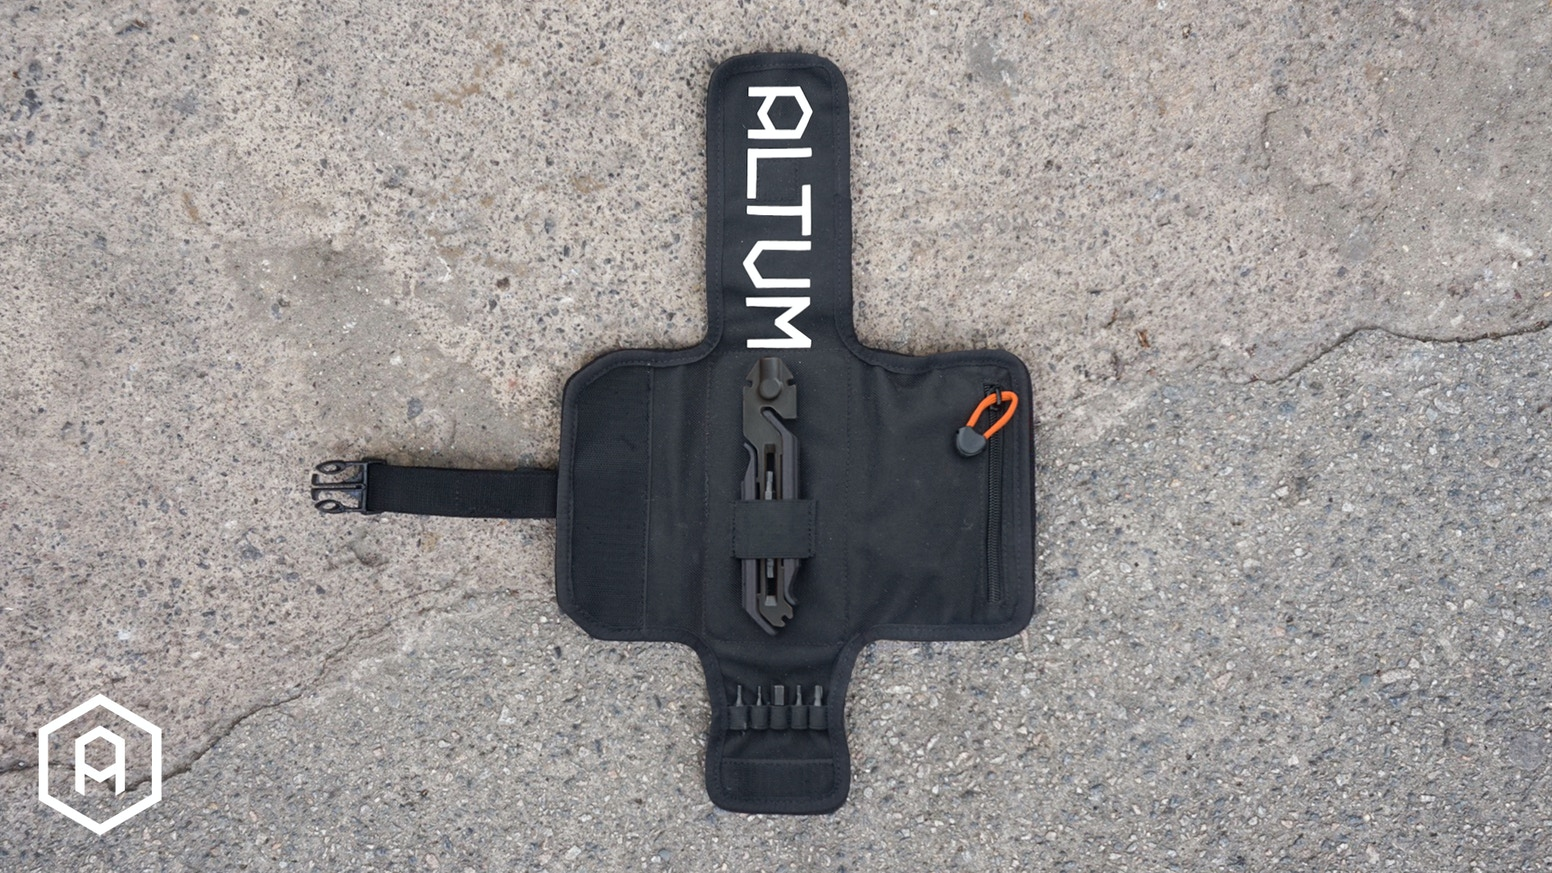 The award-winning MODUAL range consists of an innovative bicycle multi-tool and tool roll that are comprehensive enough for use at home yet compact enough for the road.